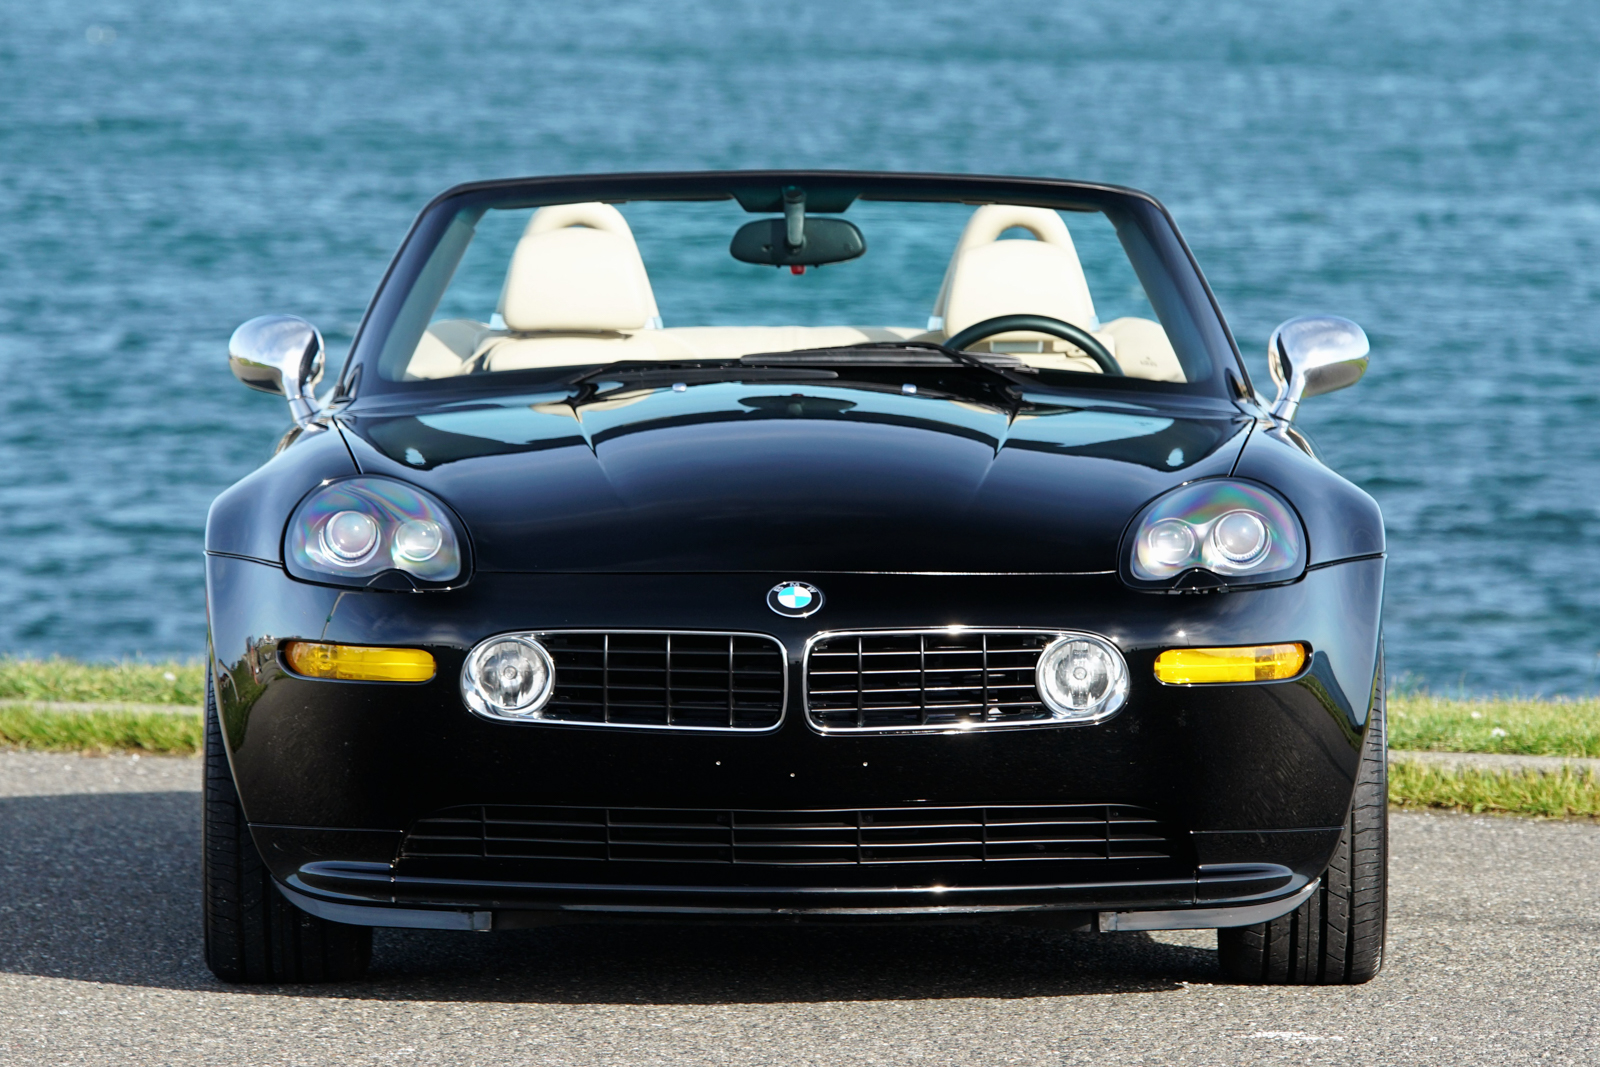 2000 BMW Z8 Roadster - Silver Arrow Cars Ltd.